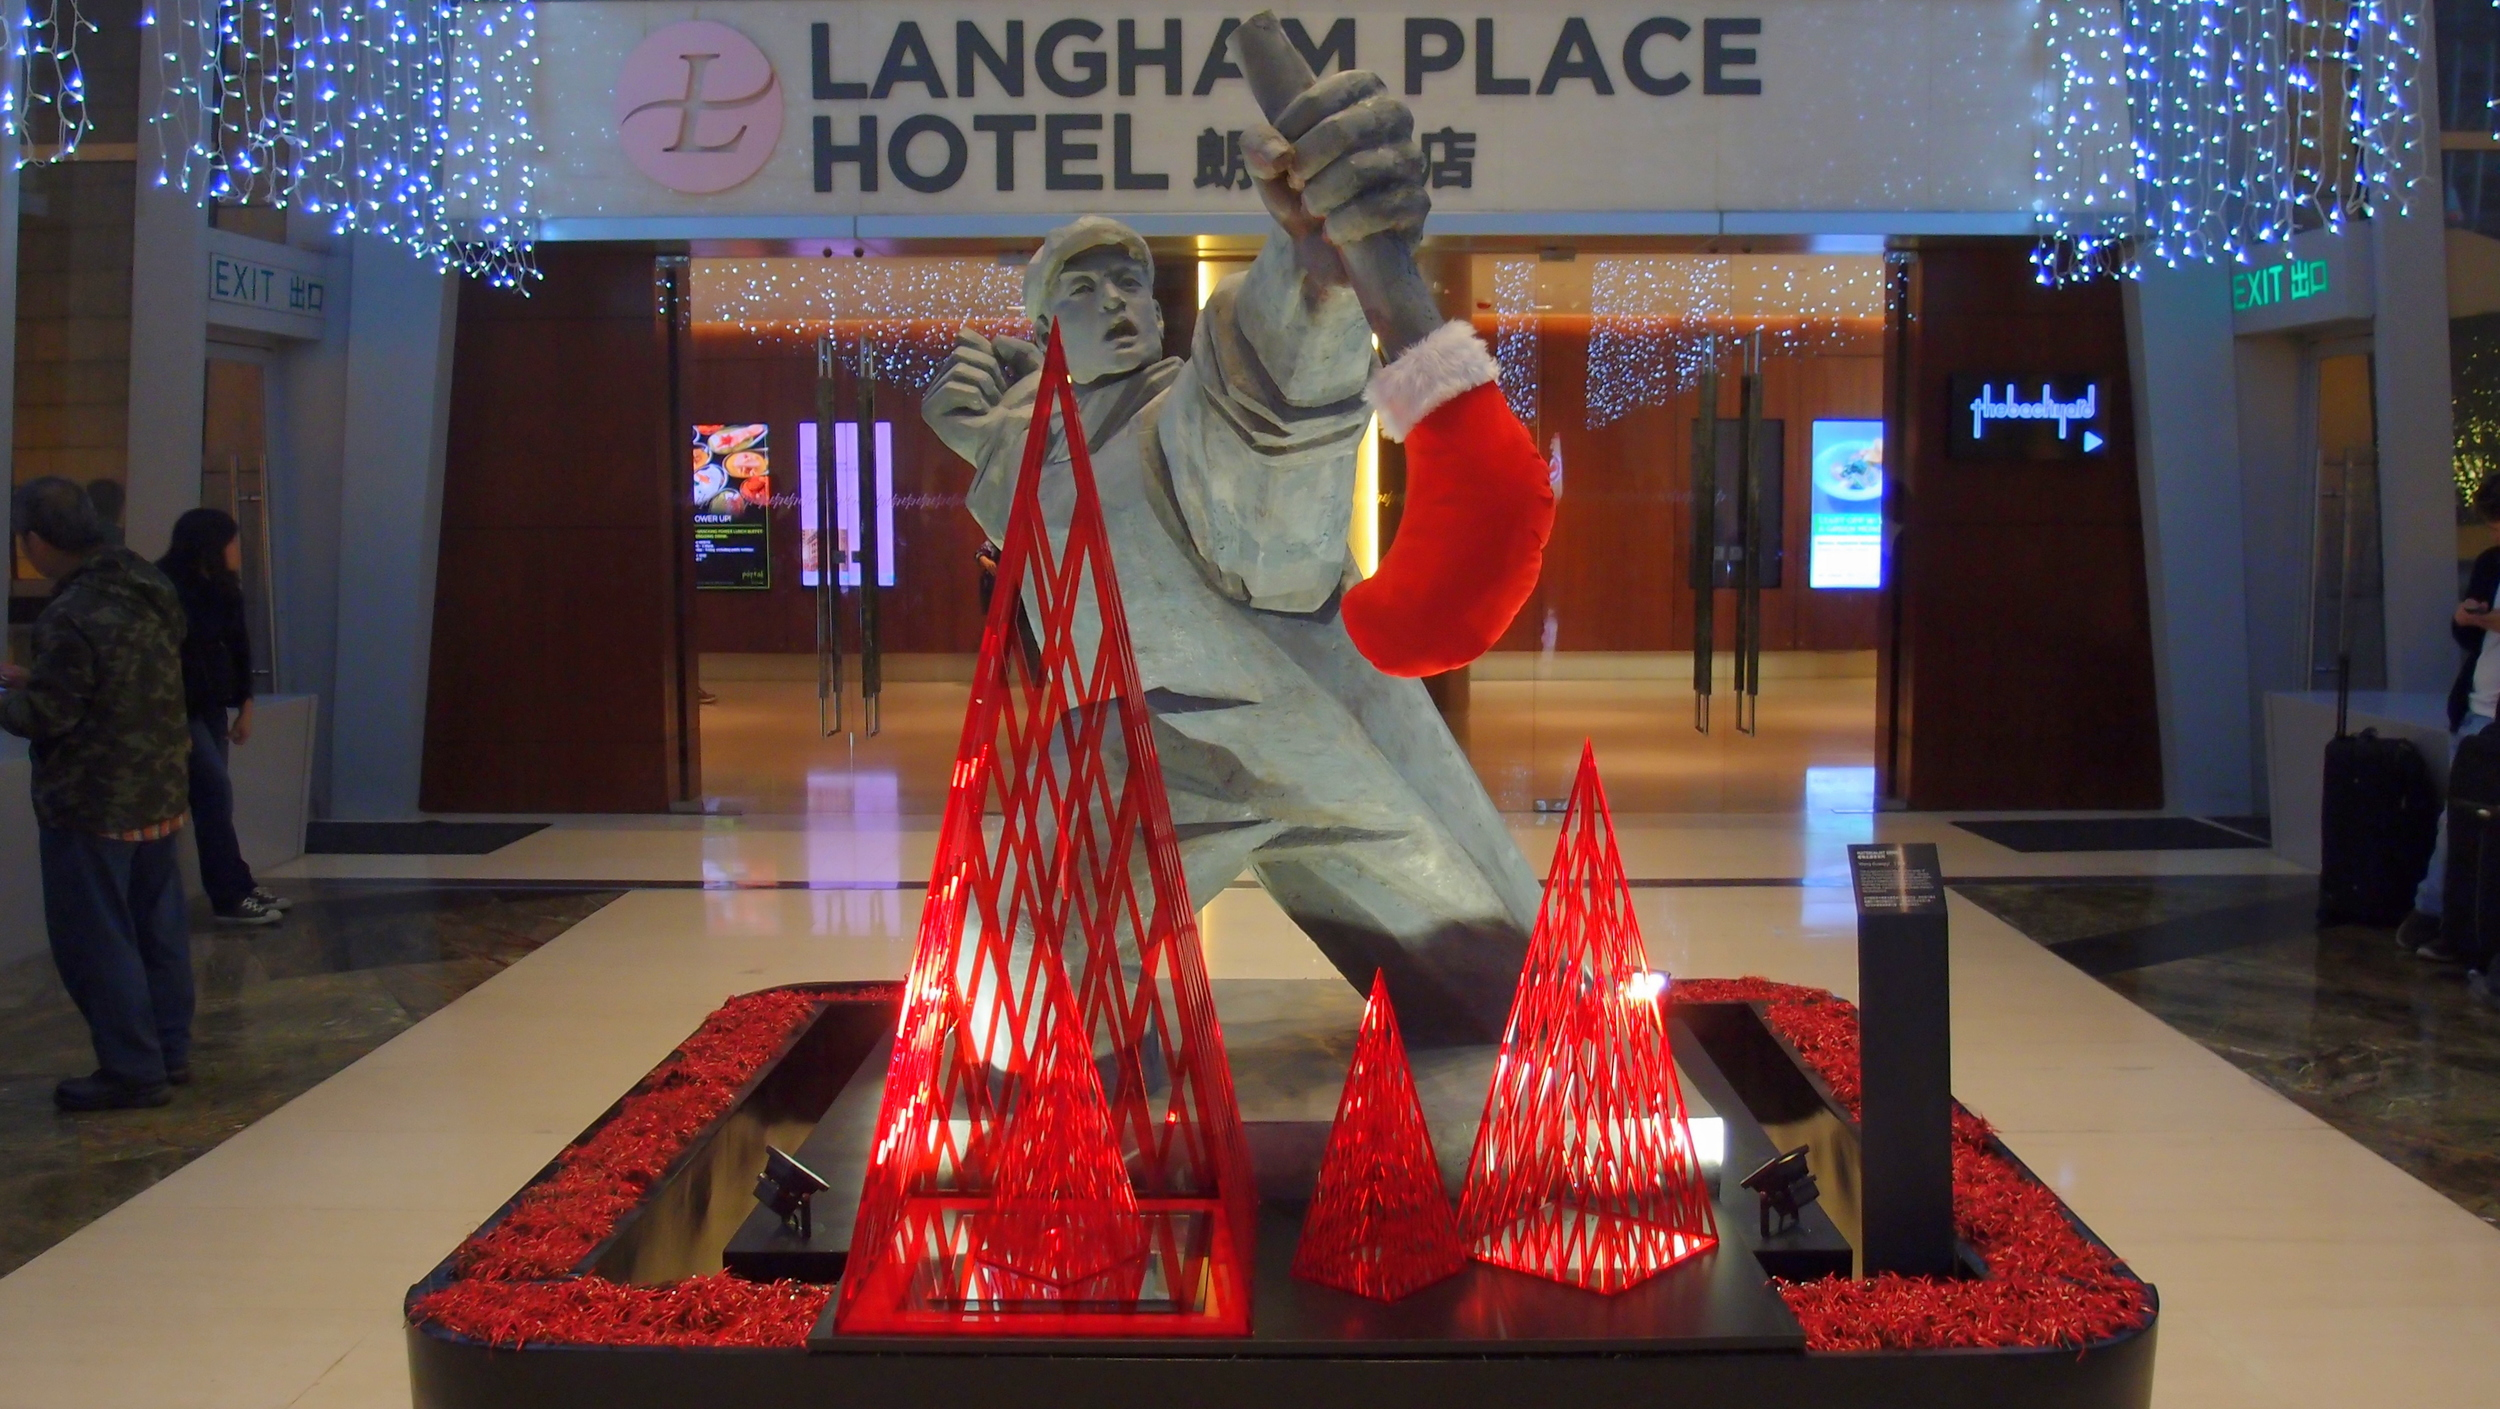 The Langham Place Hotel has a quirky sense of Xmas humour